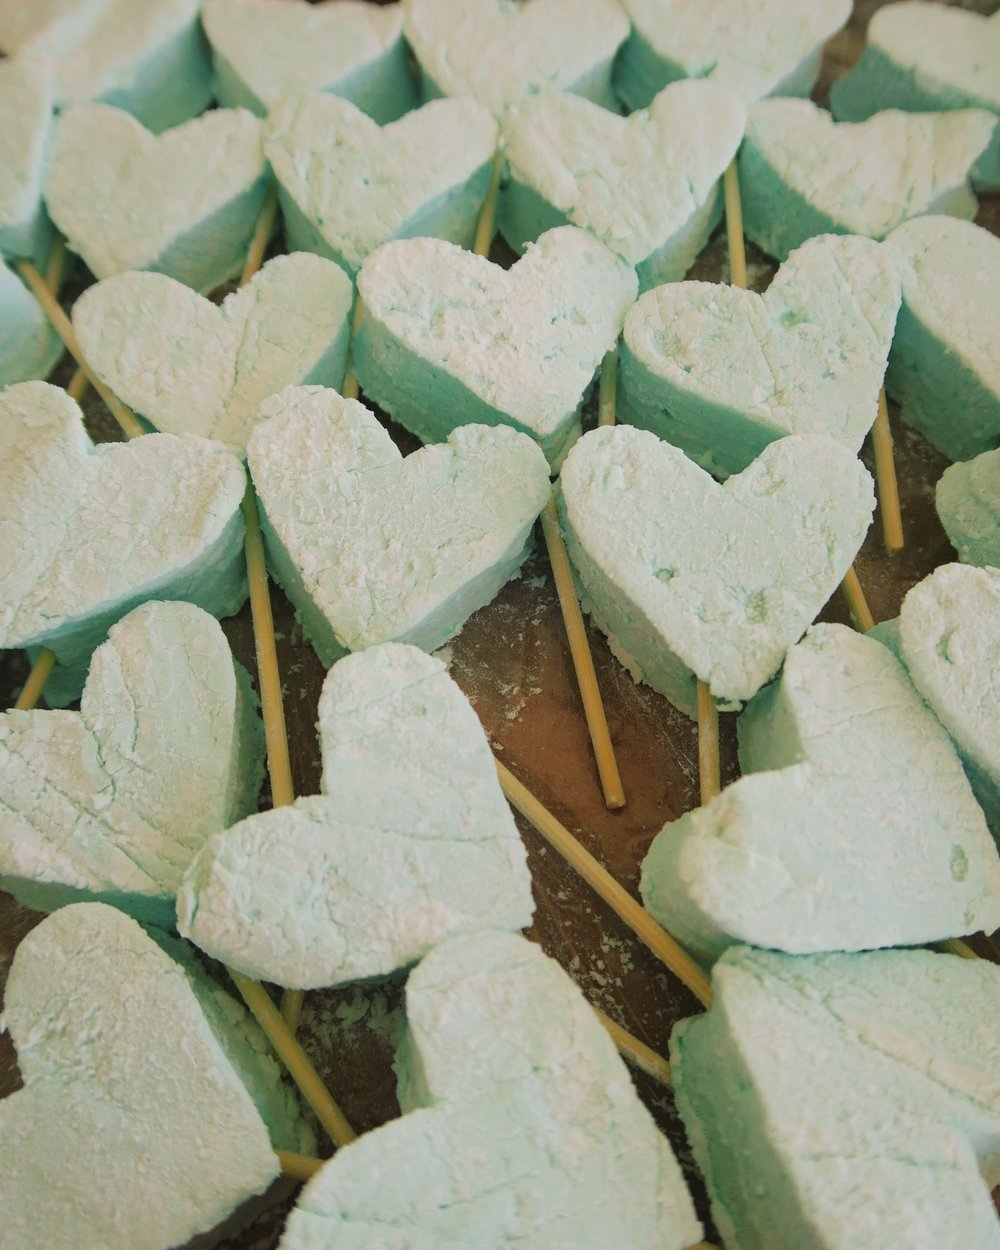 Homemade marshmallow hearts.jpg